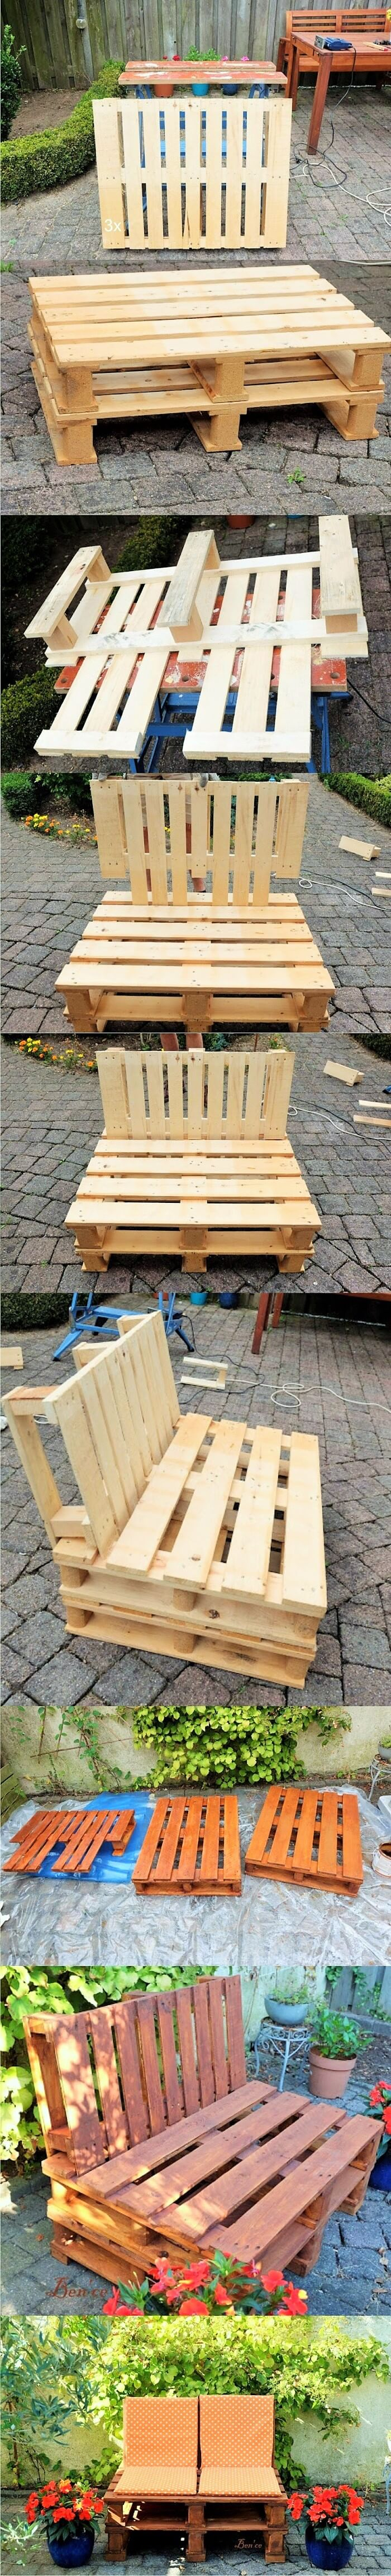 diy-pallets-furniture-garden-sofa-ideas